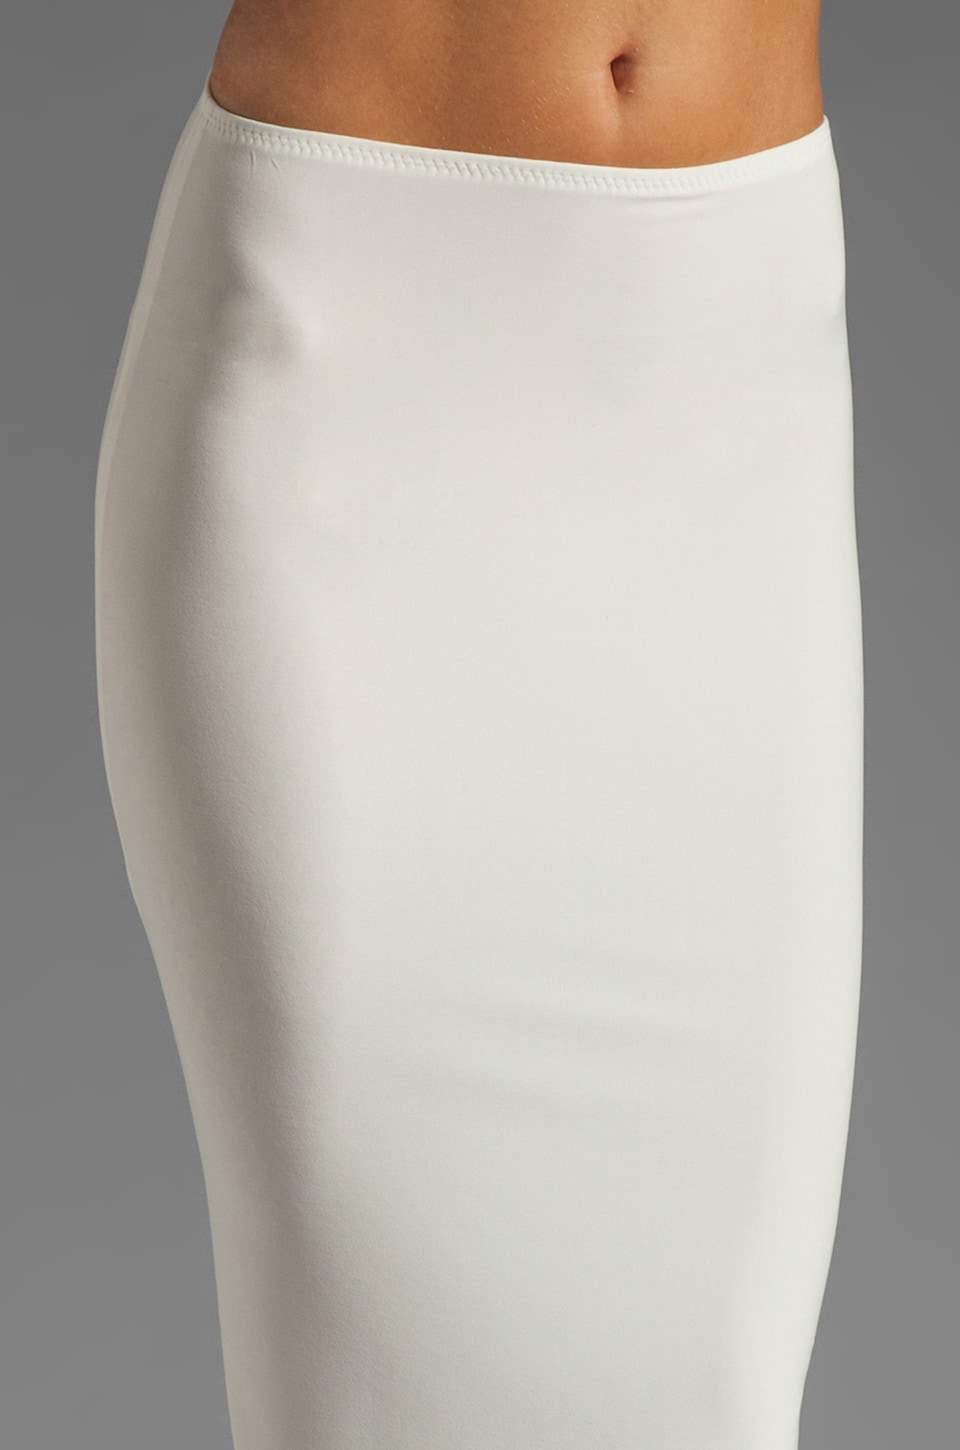 Norma Kamali Modern Vintage Jersey Pencil Skirt in White